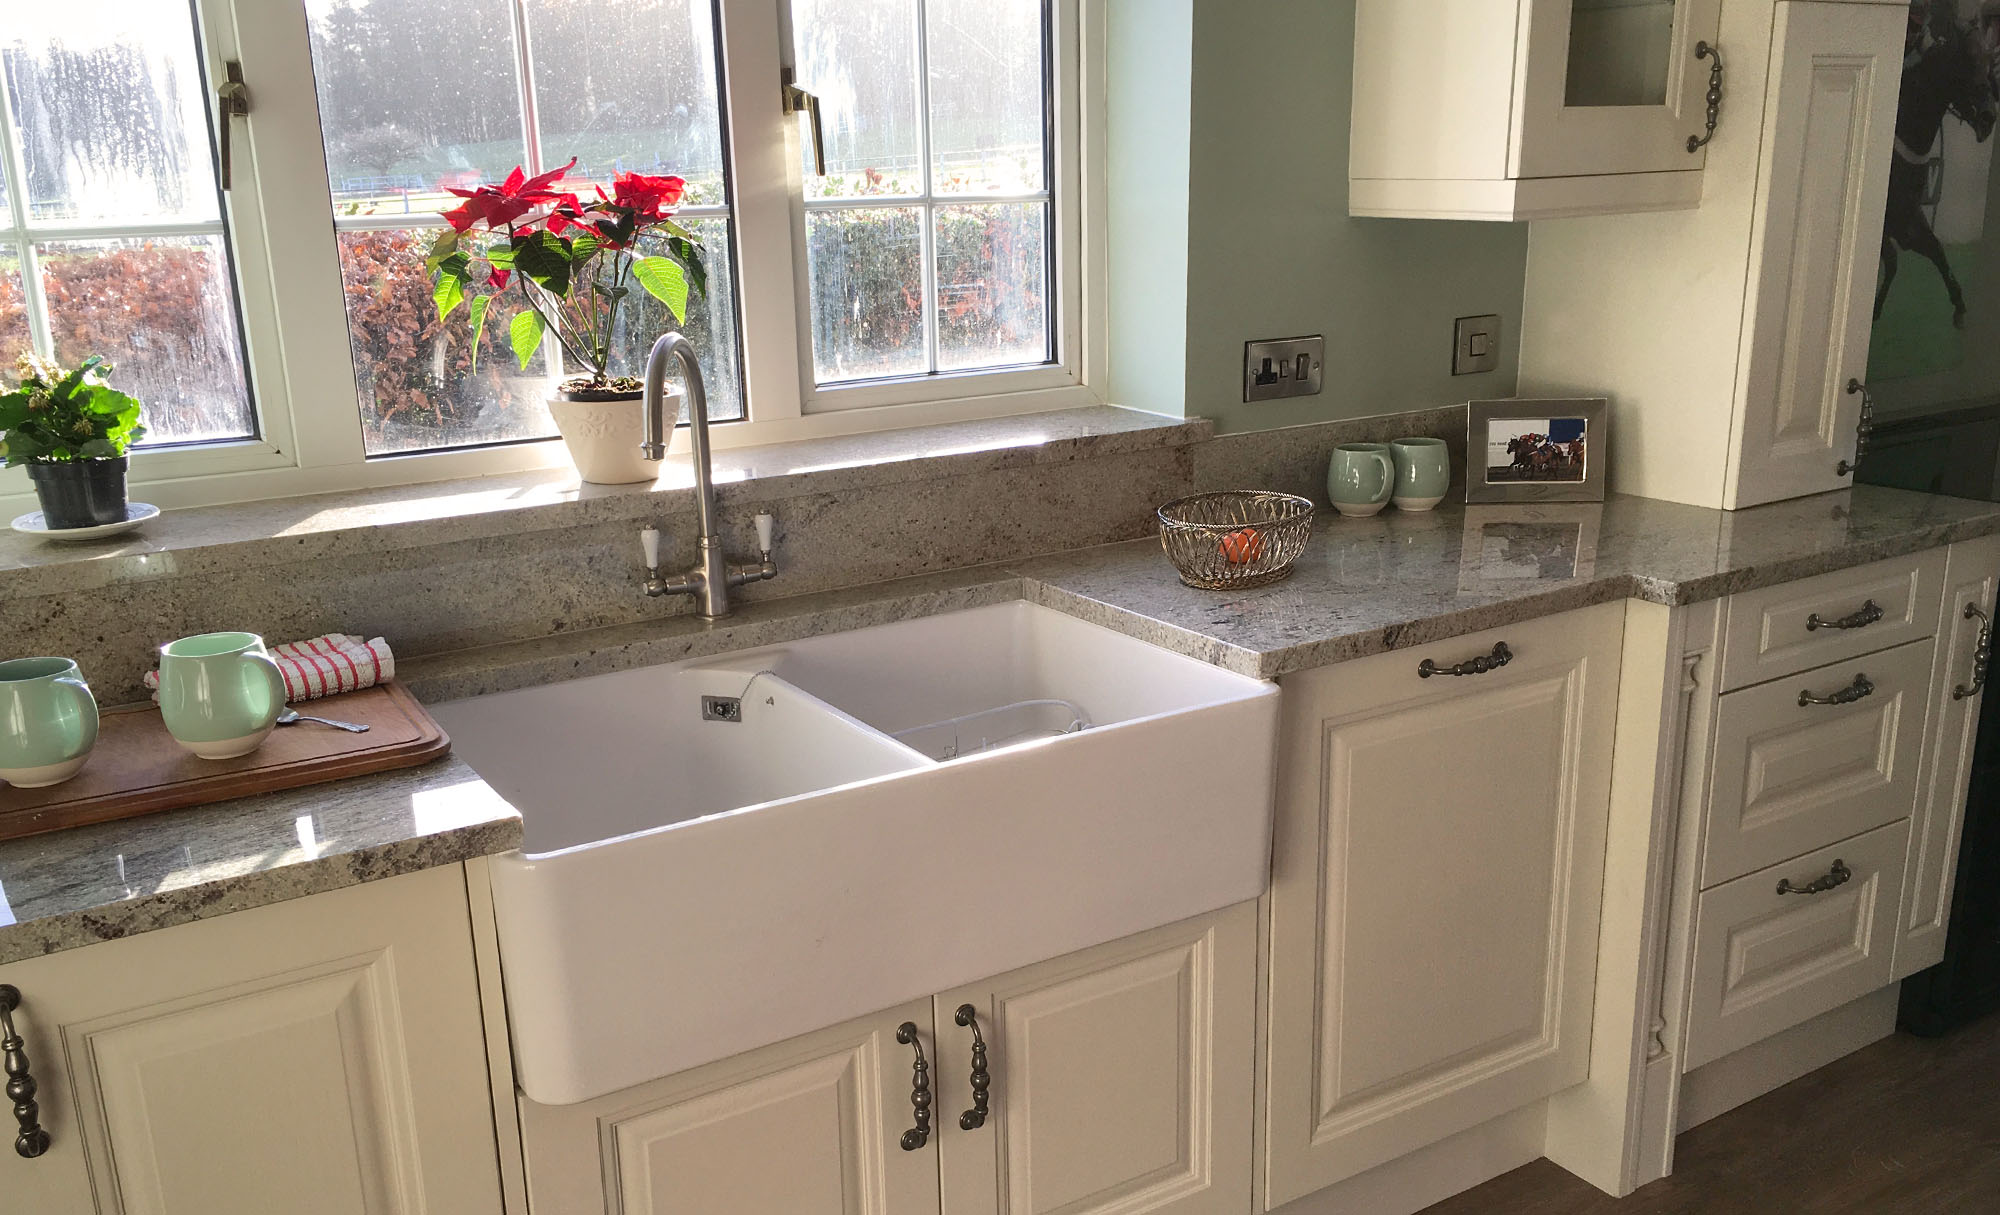 jefferson-ivory-kitchen-counter-sink